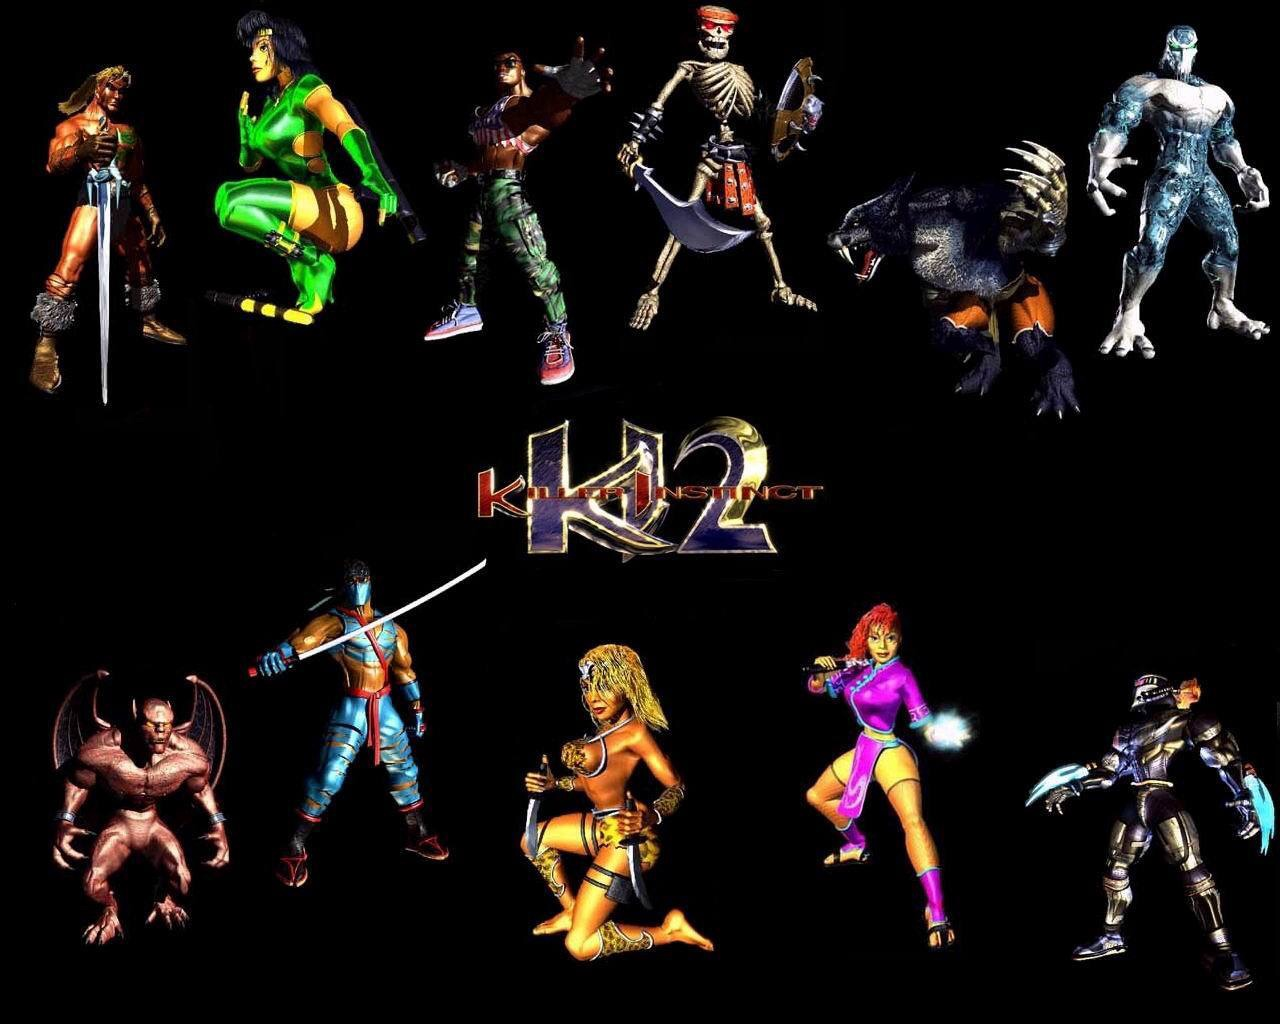 Killer Instinct 2 or KI2